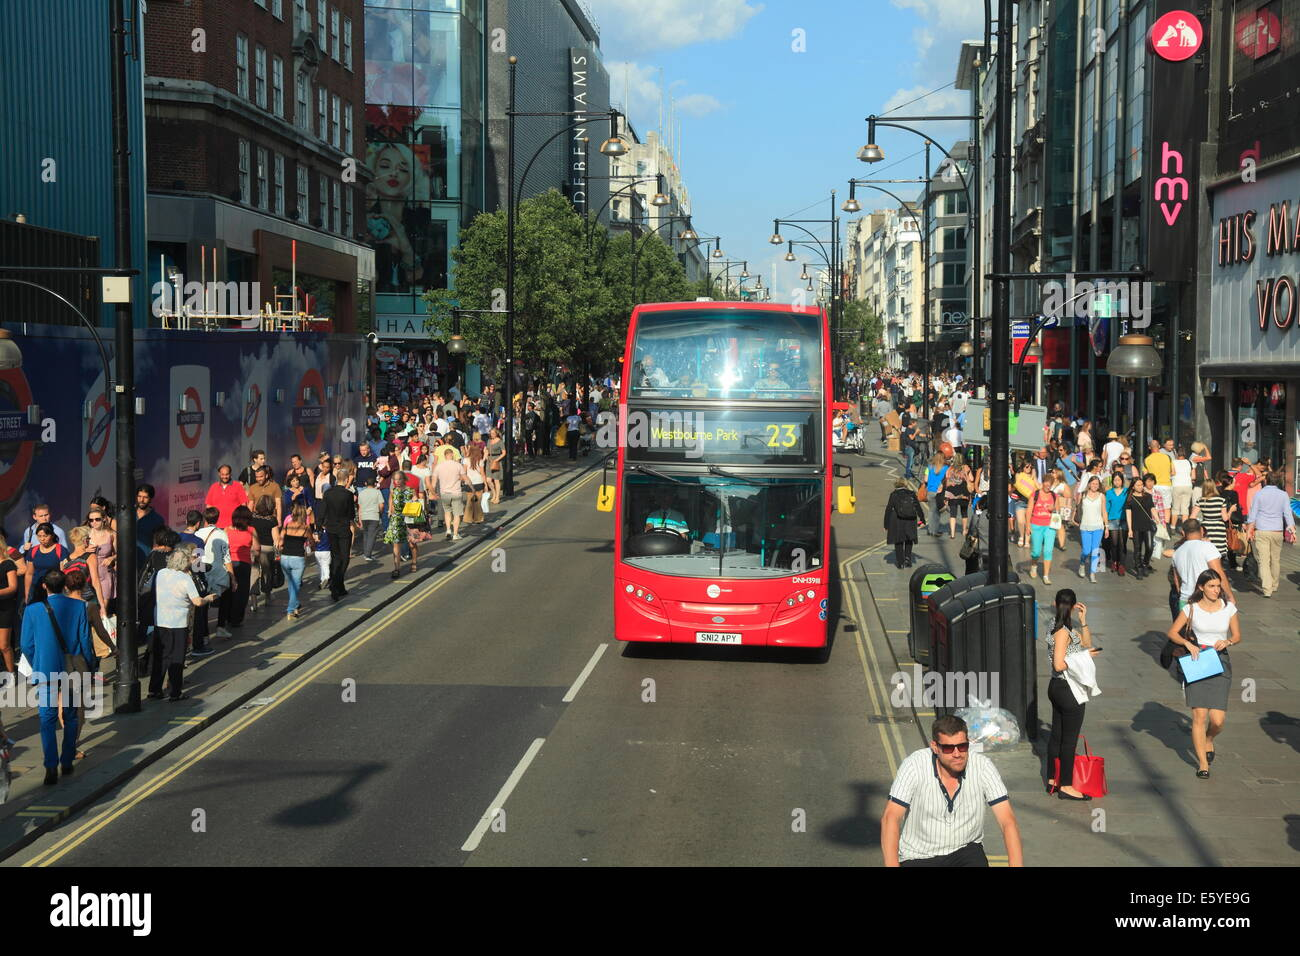 Oxford Street in London's West End - Stock Image